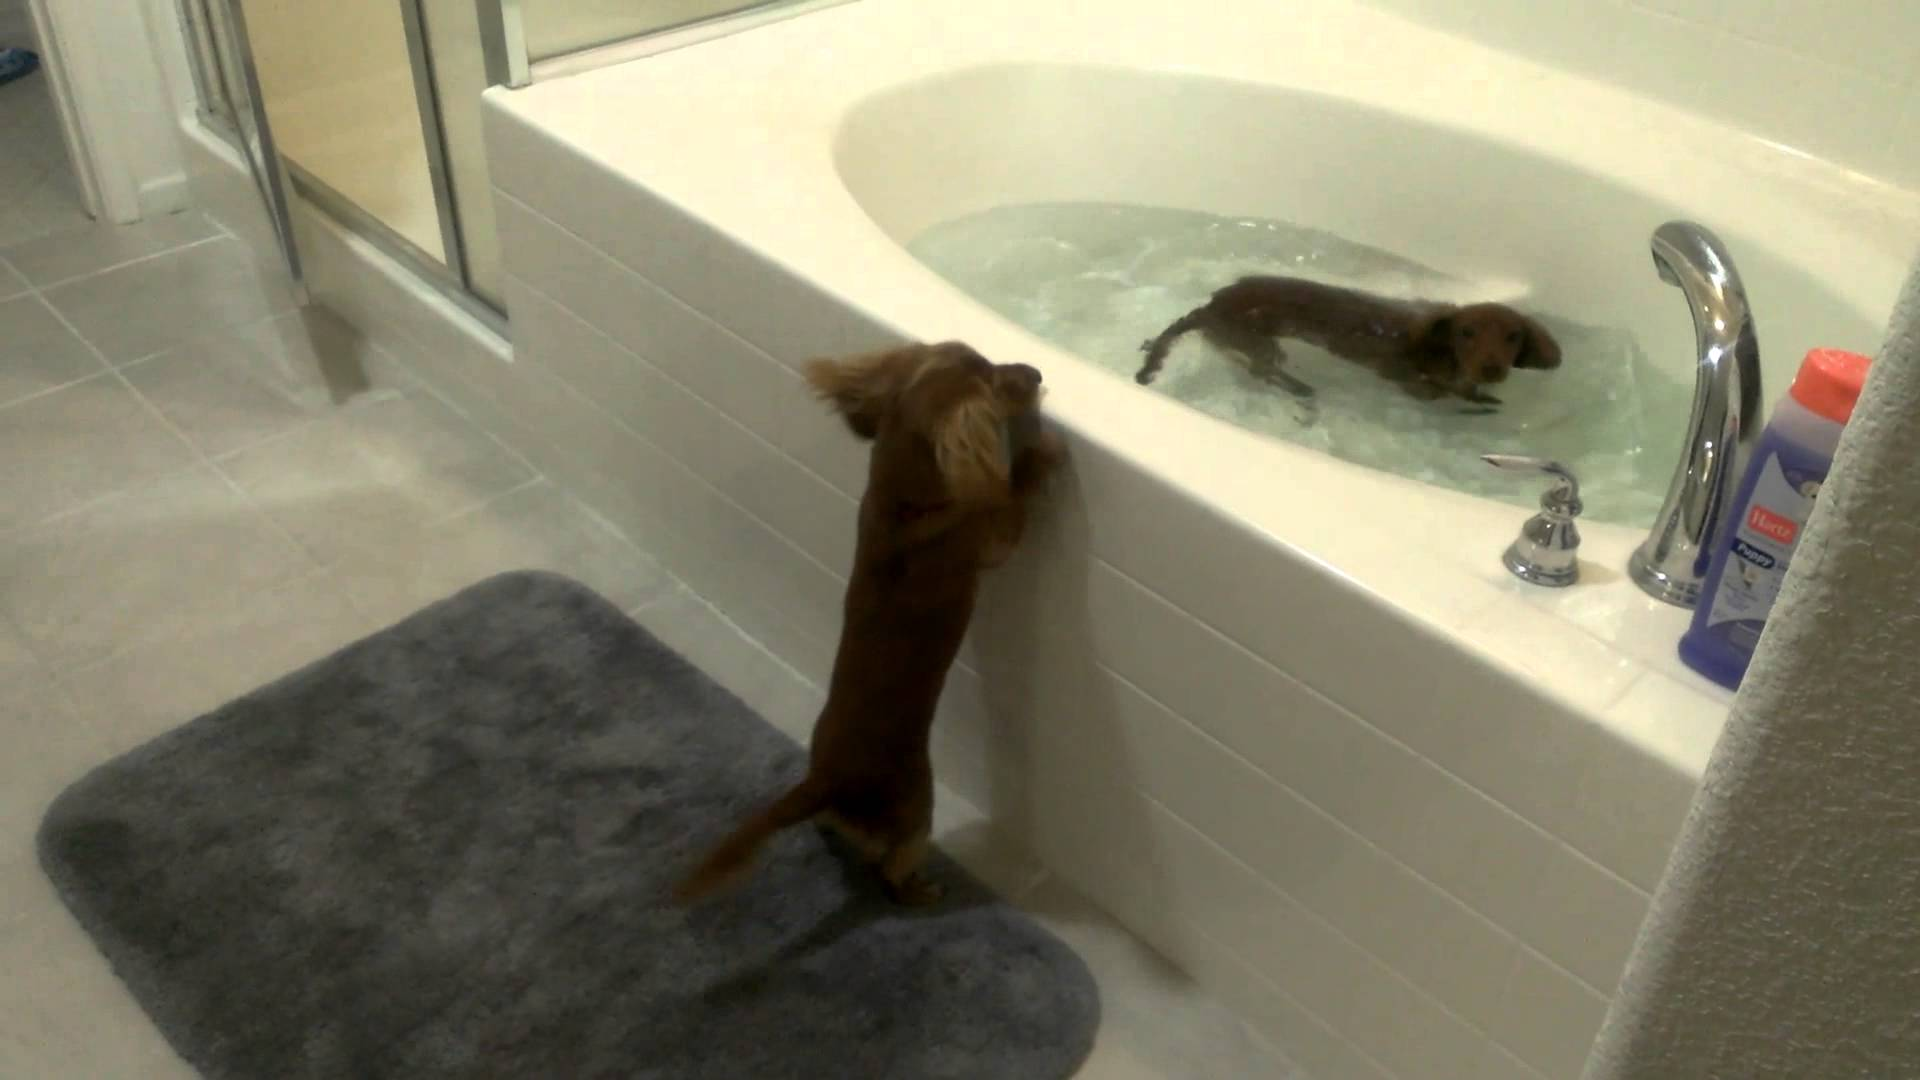 Your daily dose of cute: Dachshund bath time edition